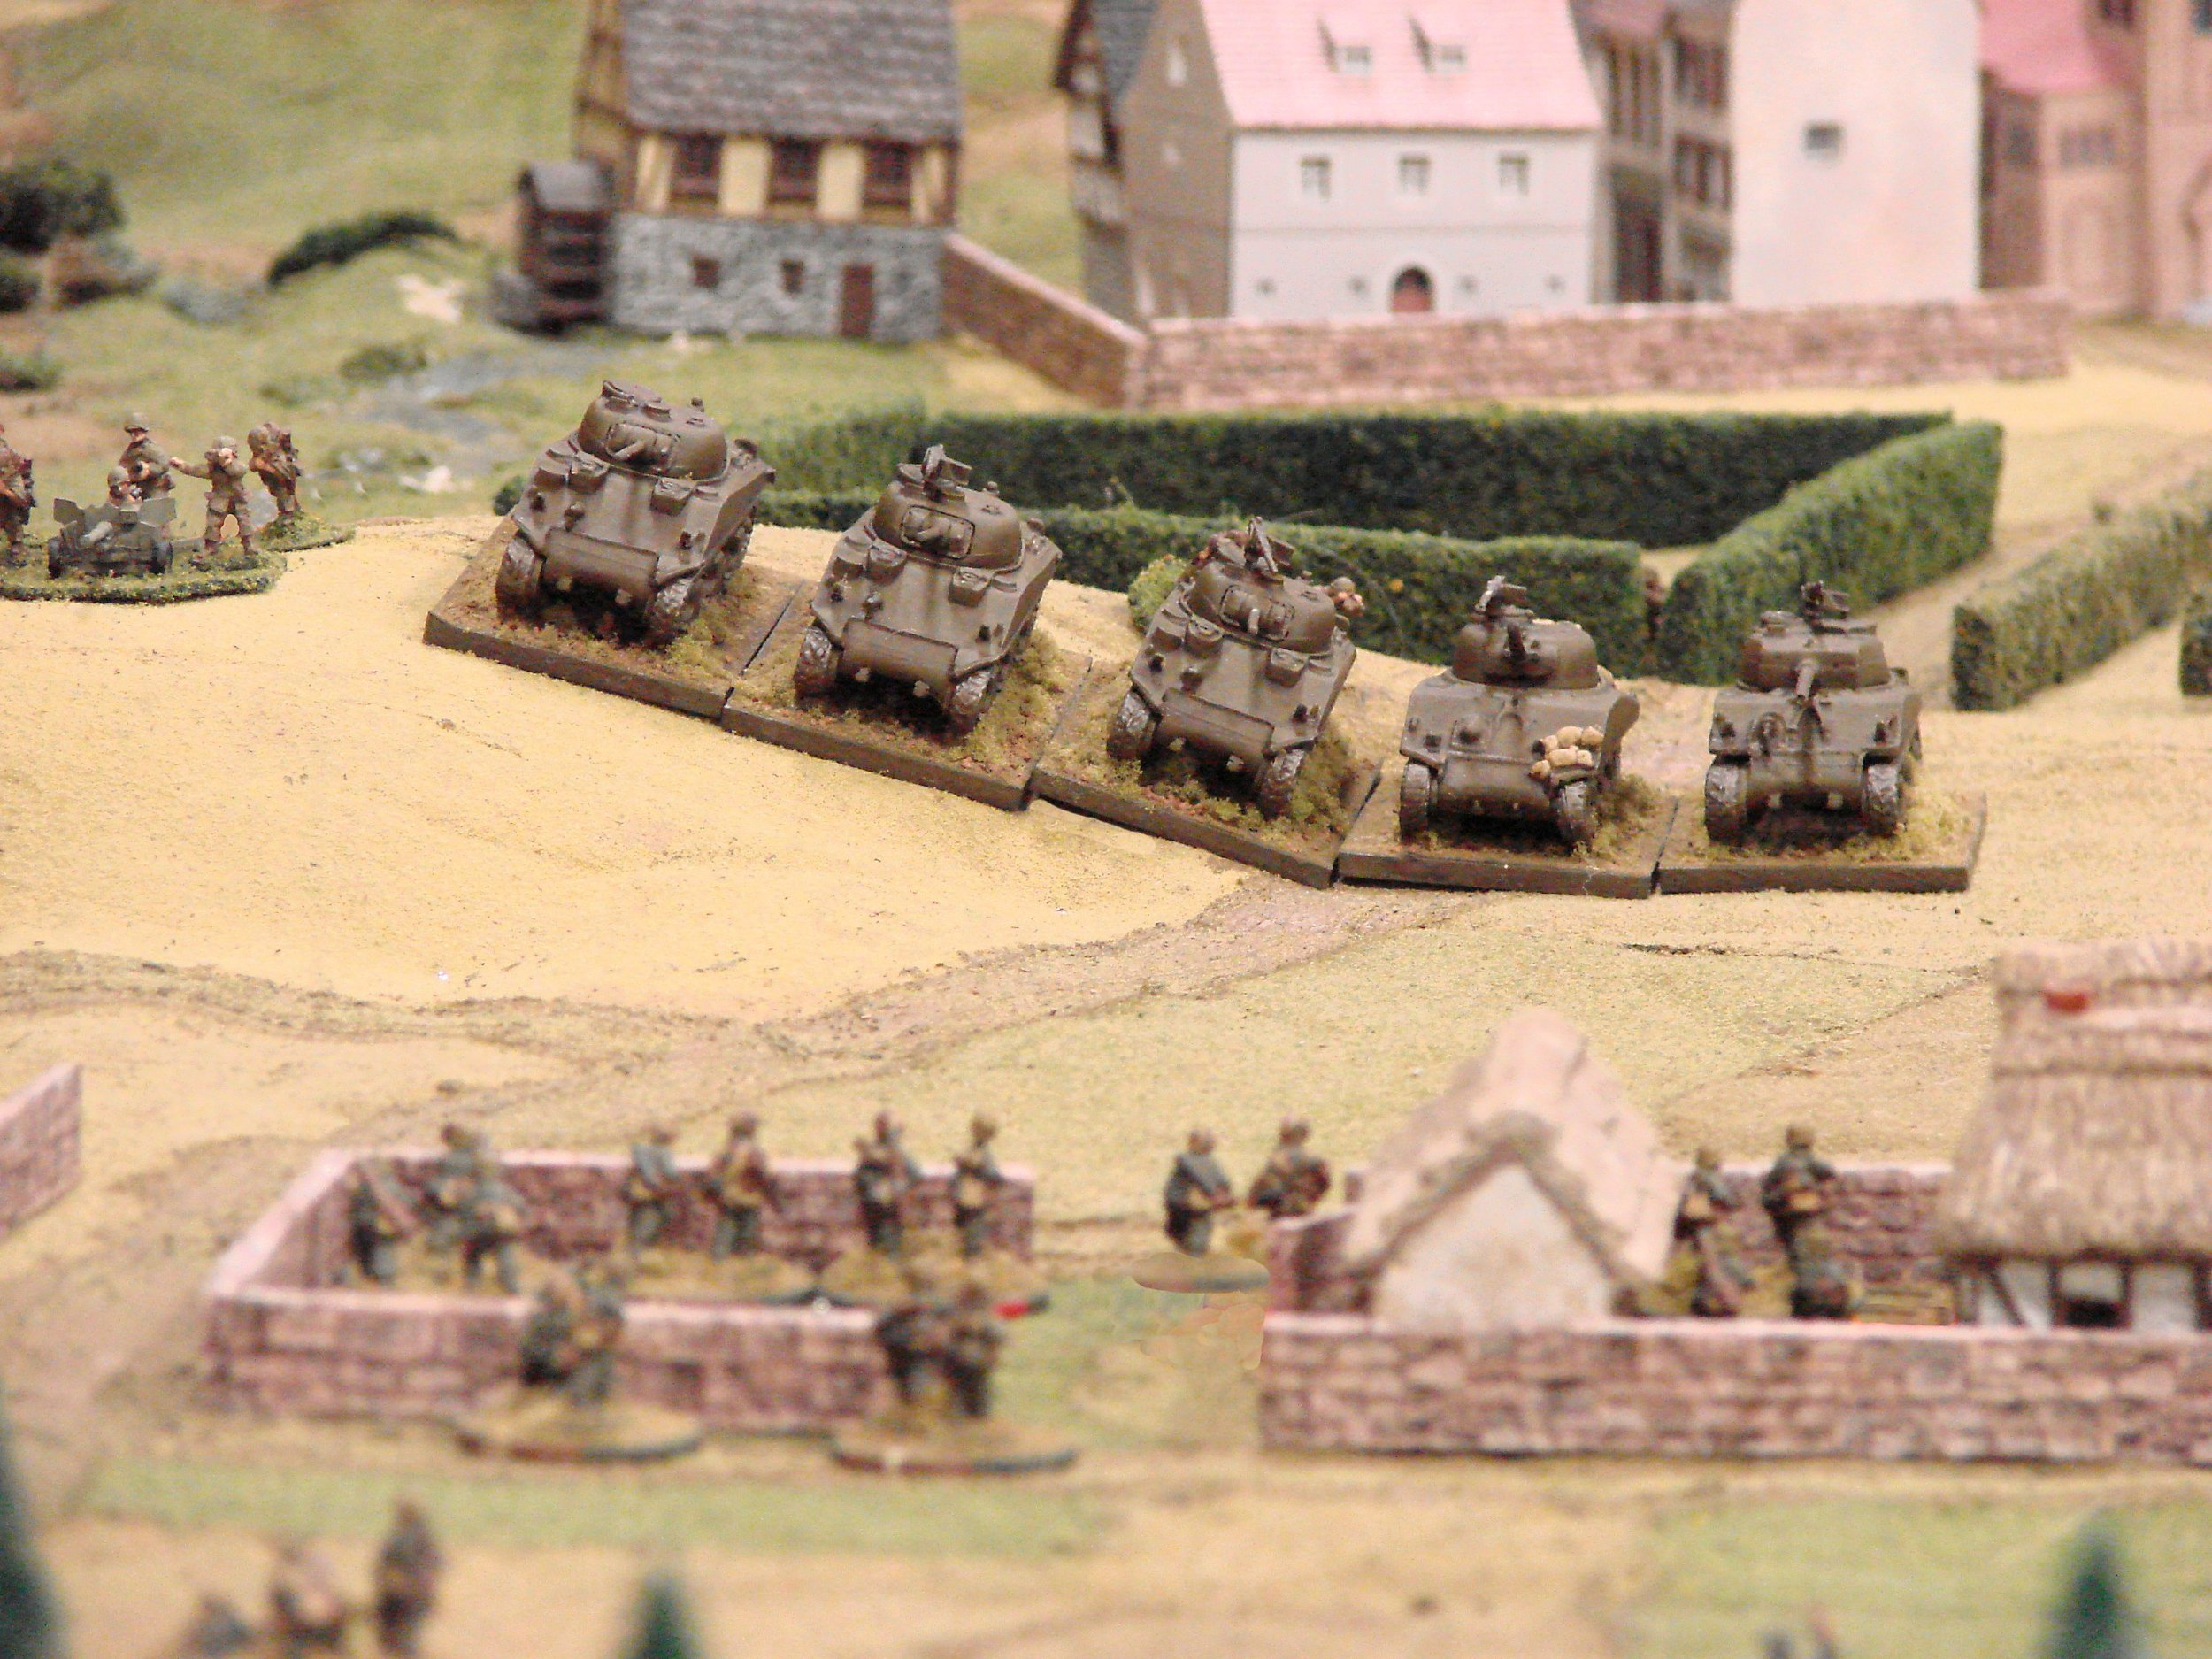 American reinforcements arrive...